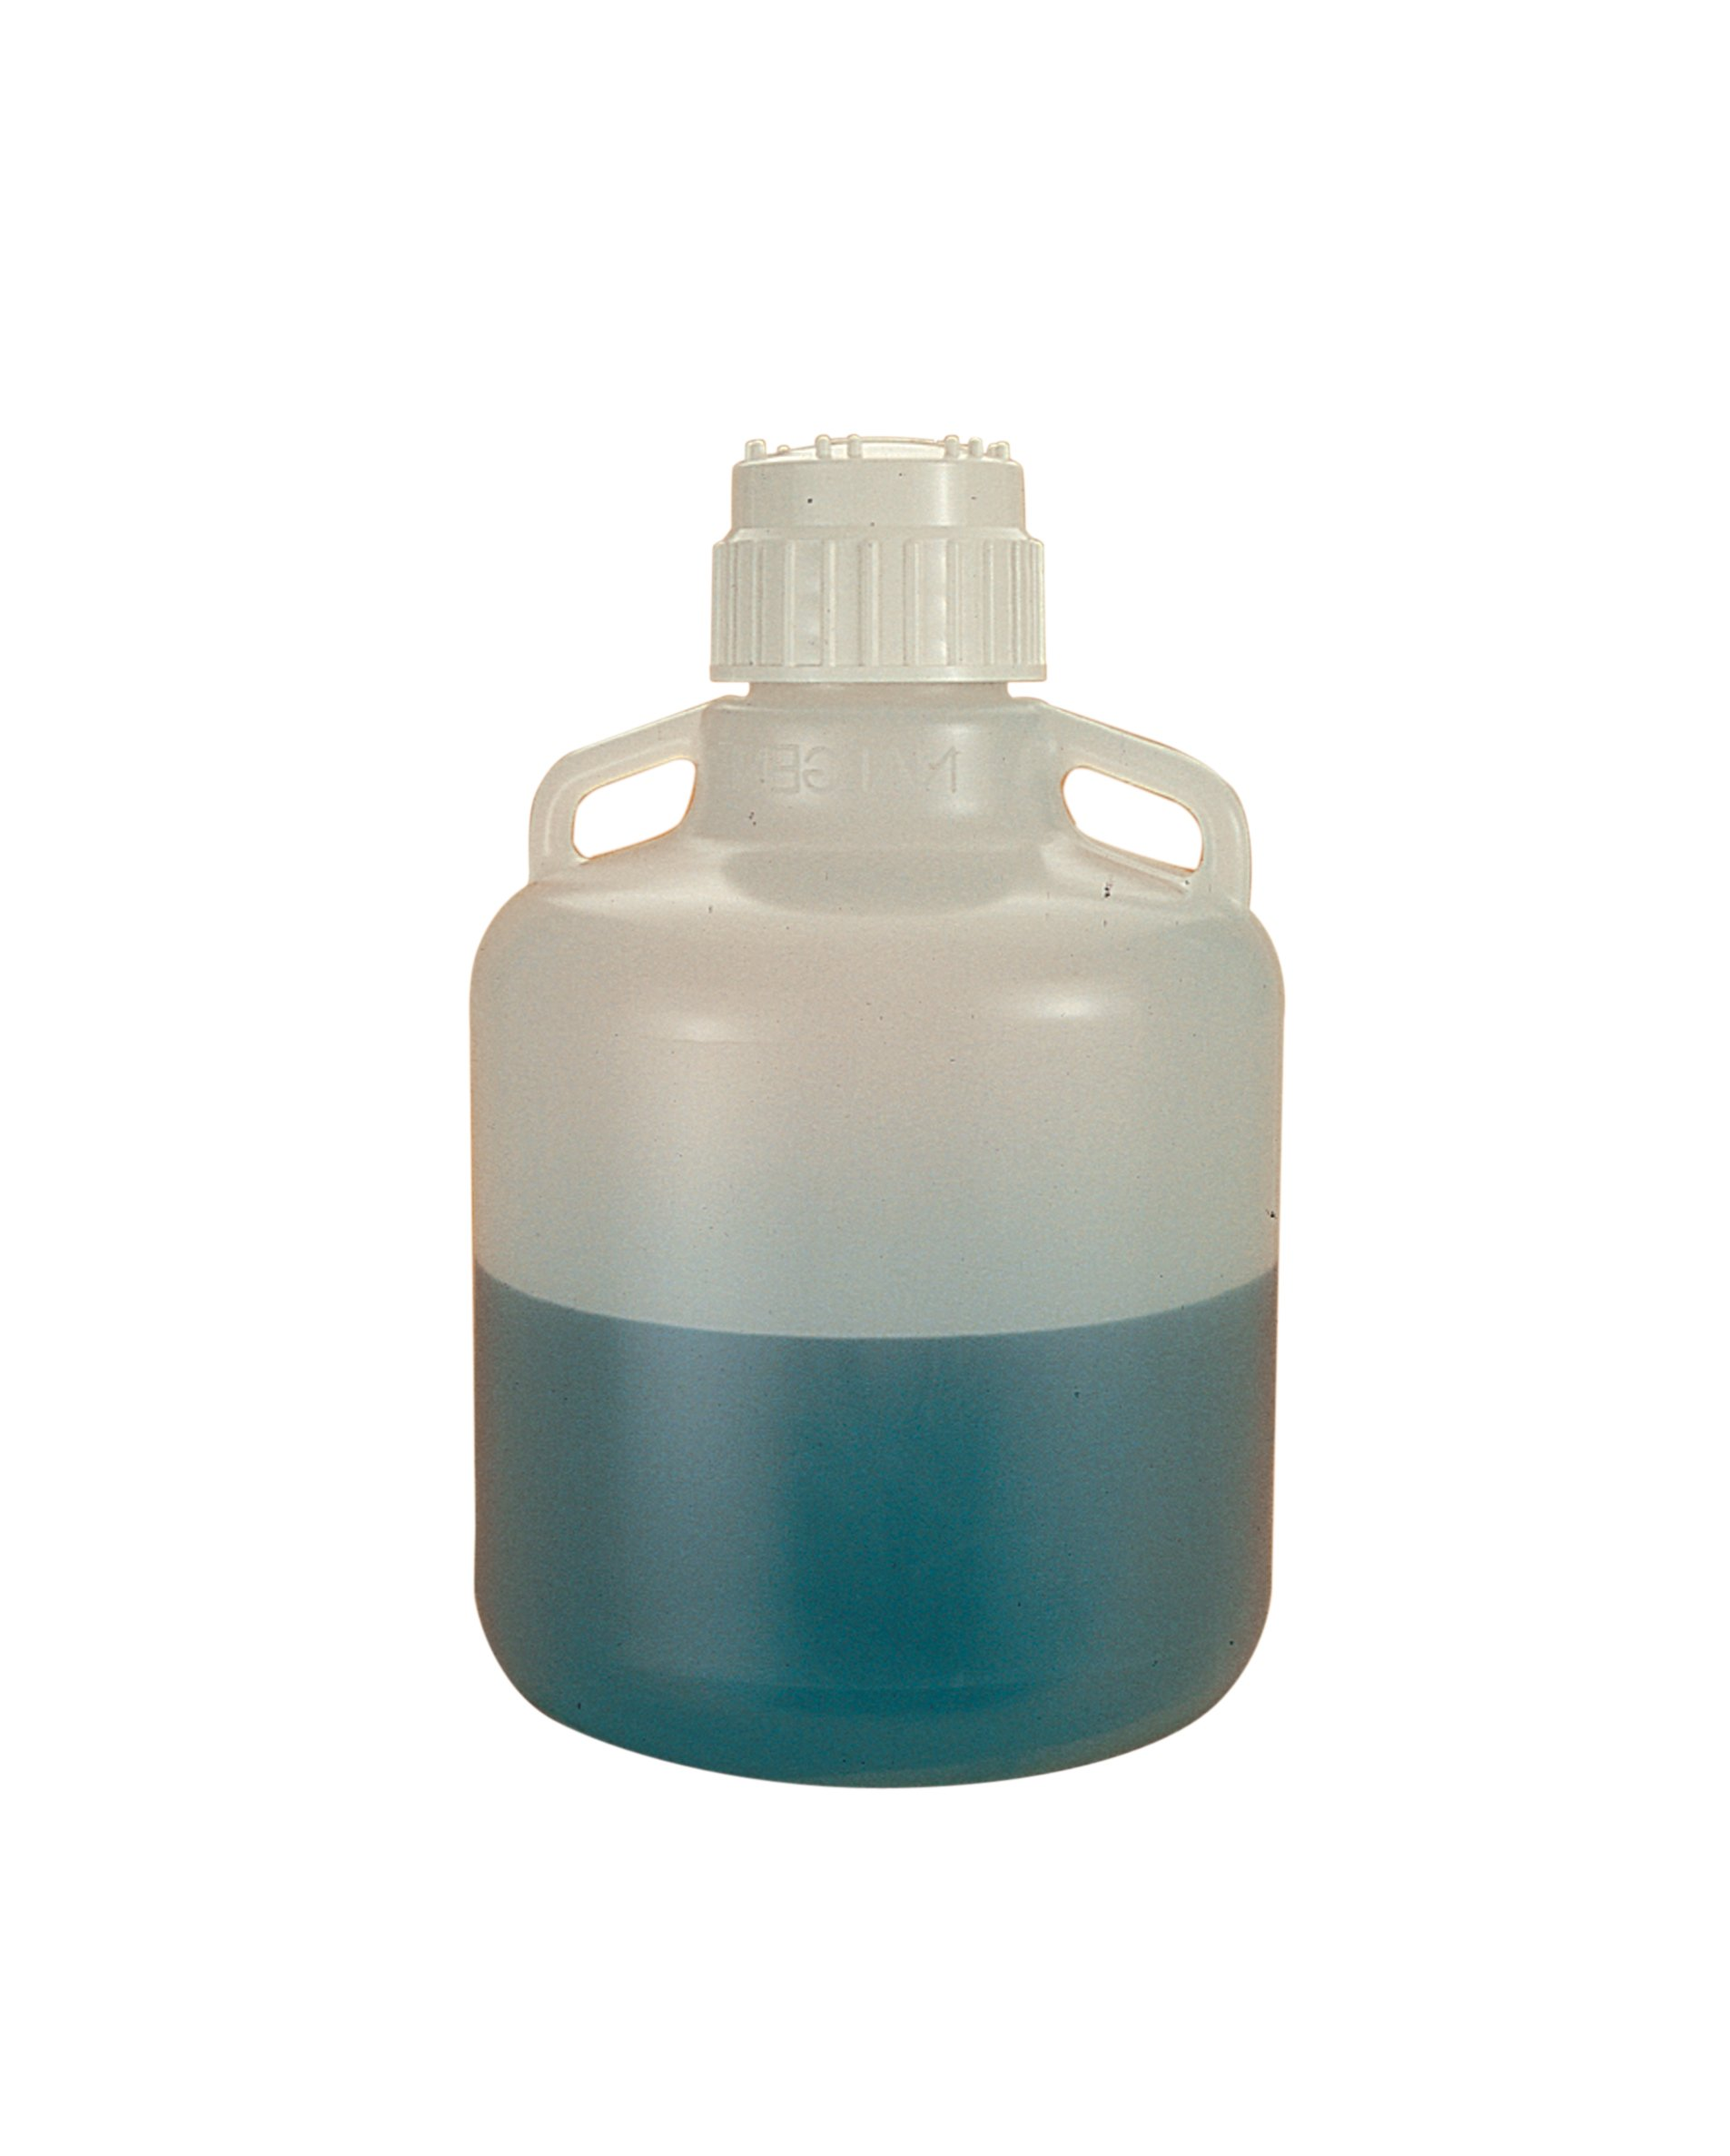 Nalgene Polypropylene Carboys with Handles Autoclavable, 20 Liters Capacity (Case of 4)